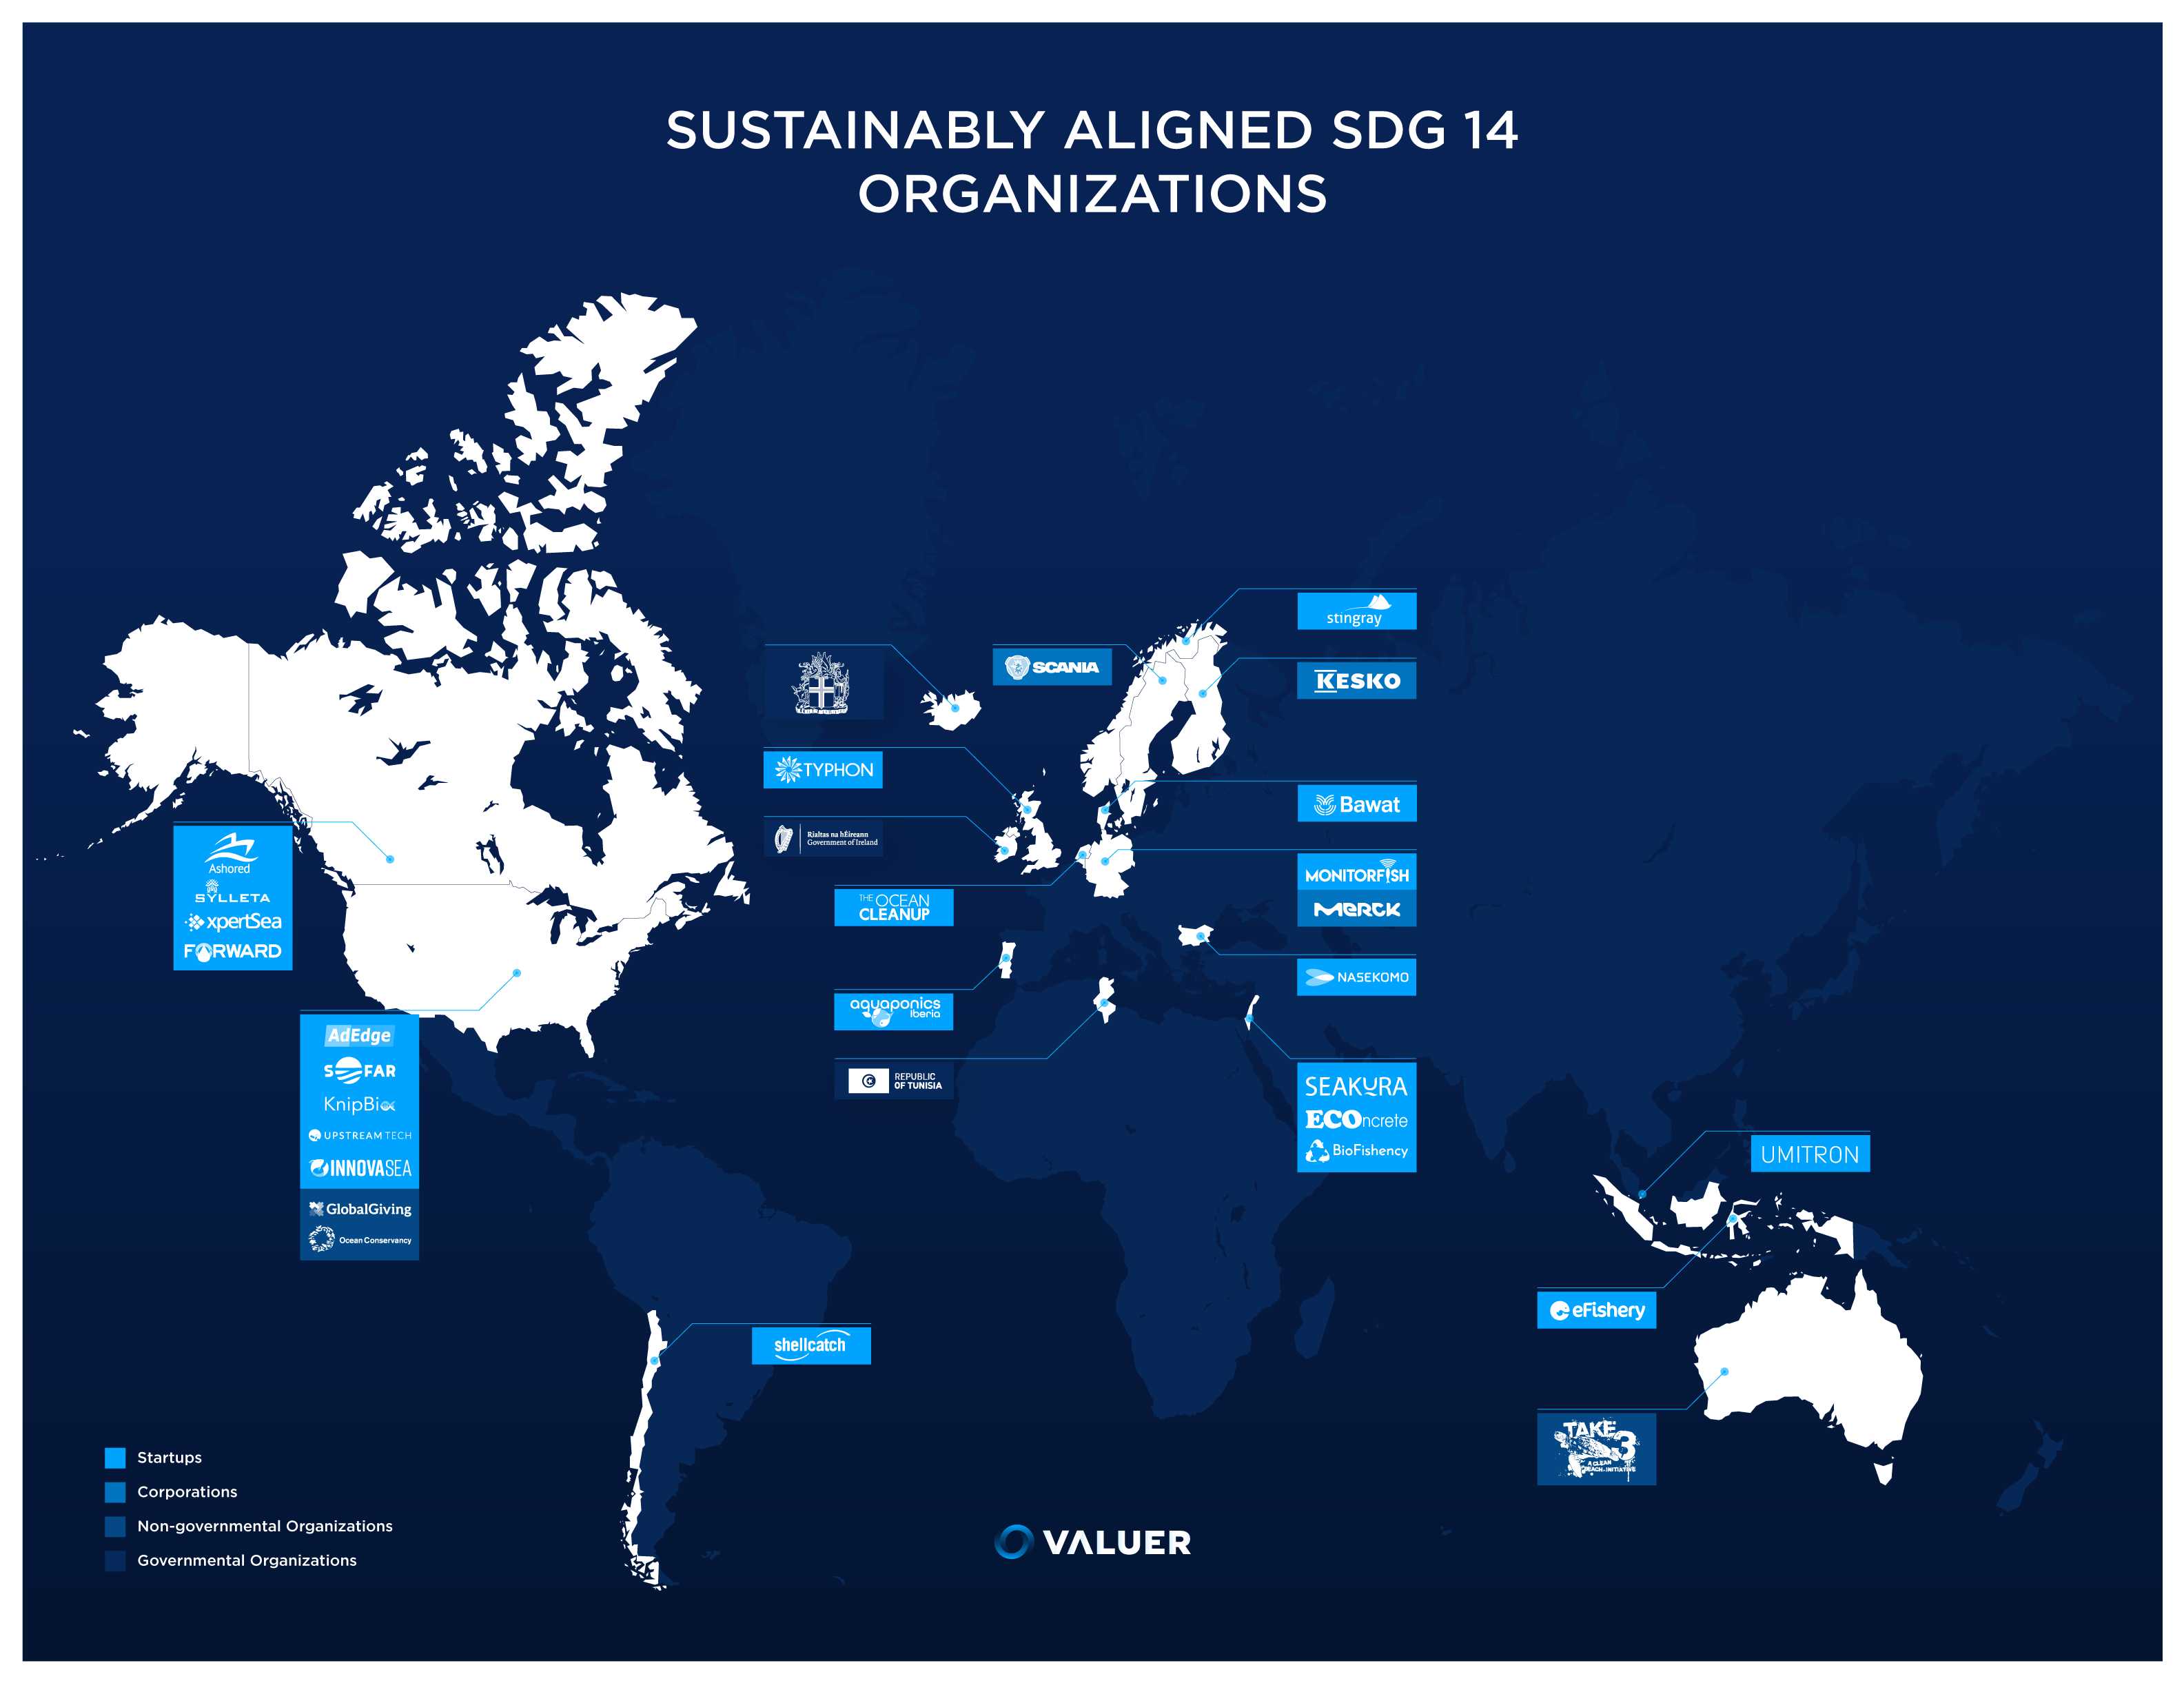 Sustainably aligned SDG 14 organizations